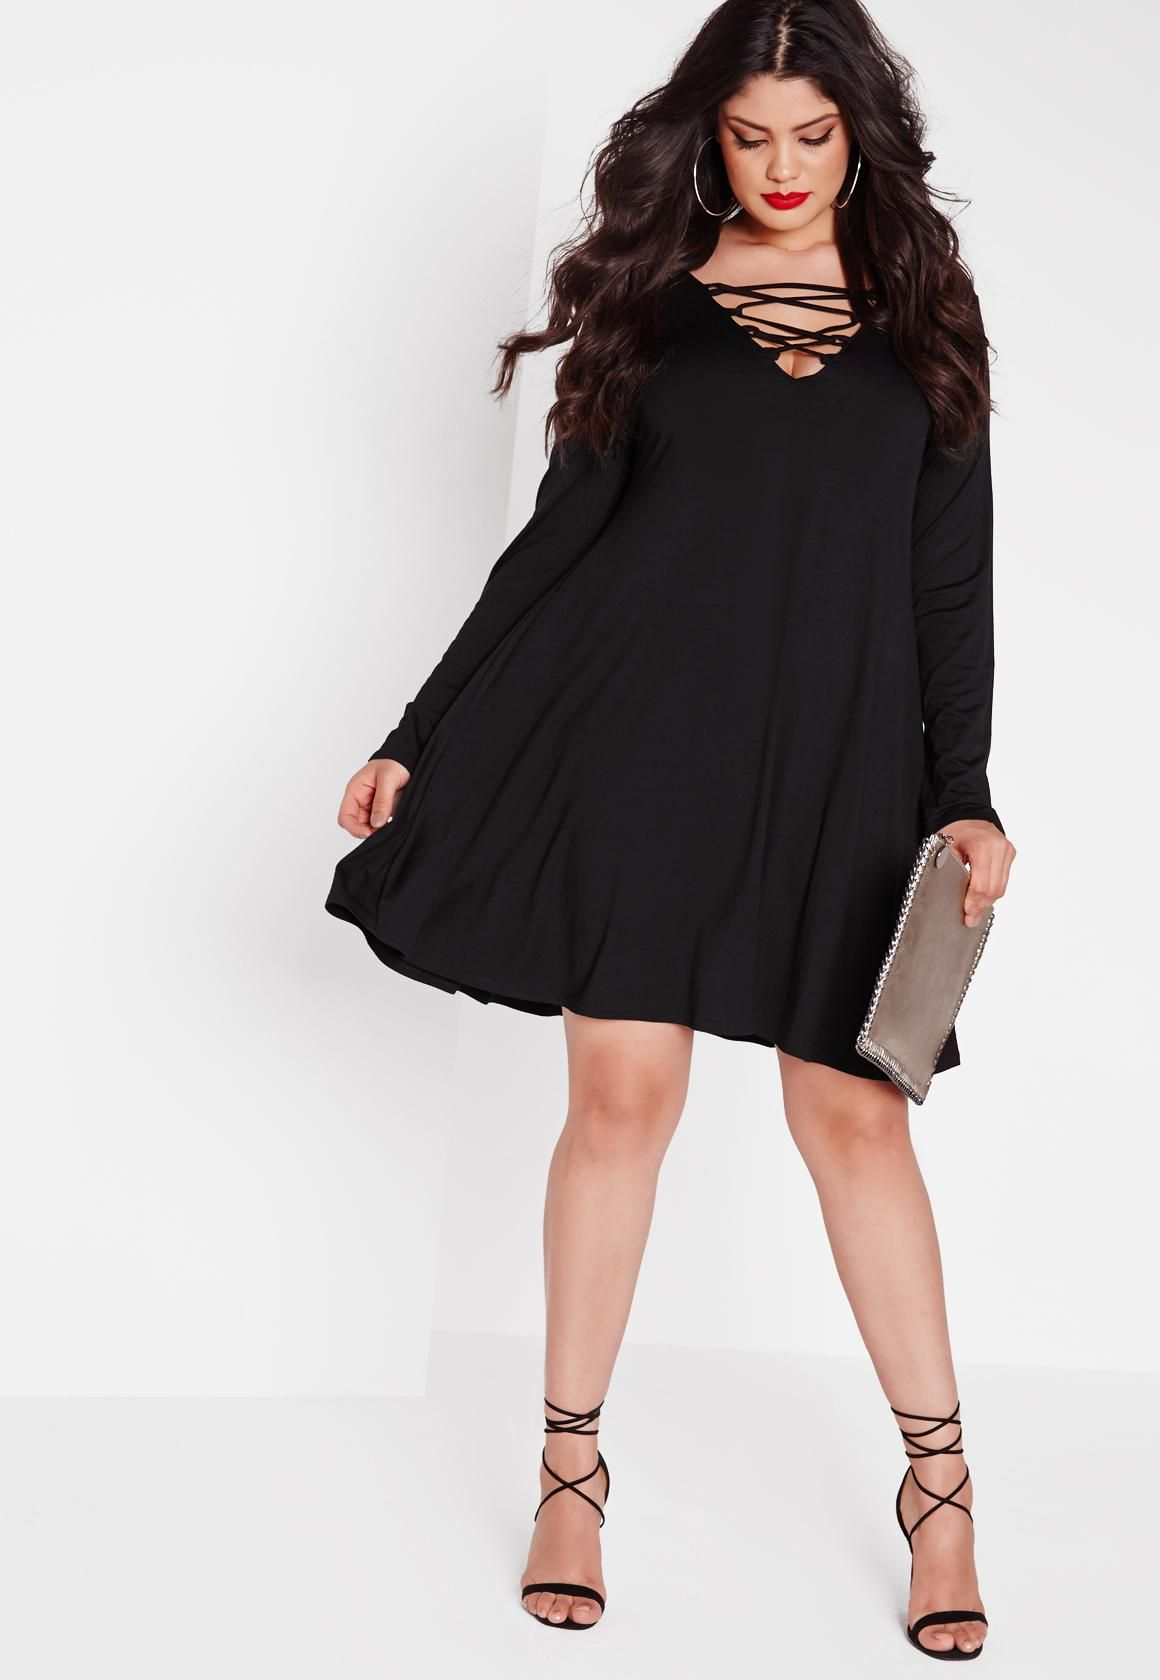 5b450f2b82 Lace up deets are what we love here at Missguided and this black swing dress  with long sleeves and lace up feature to the front is perfect day or night!